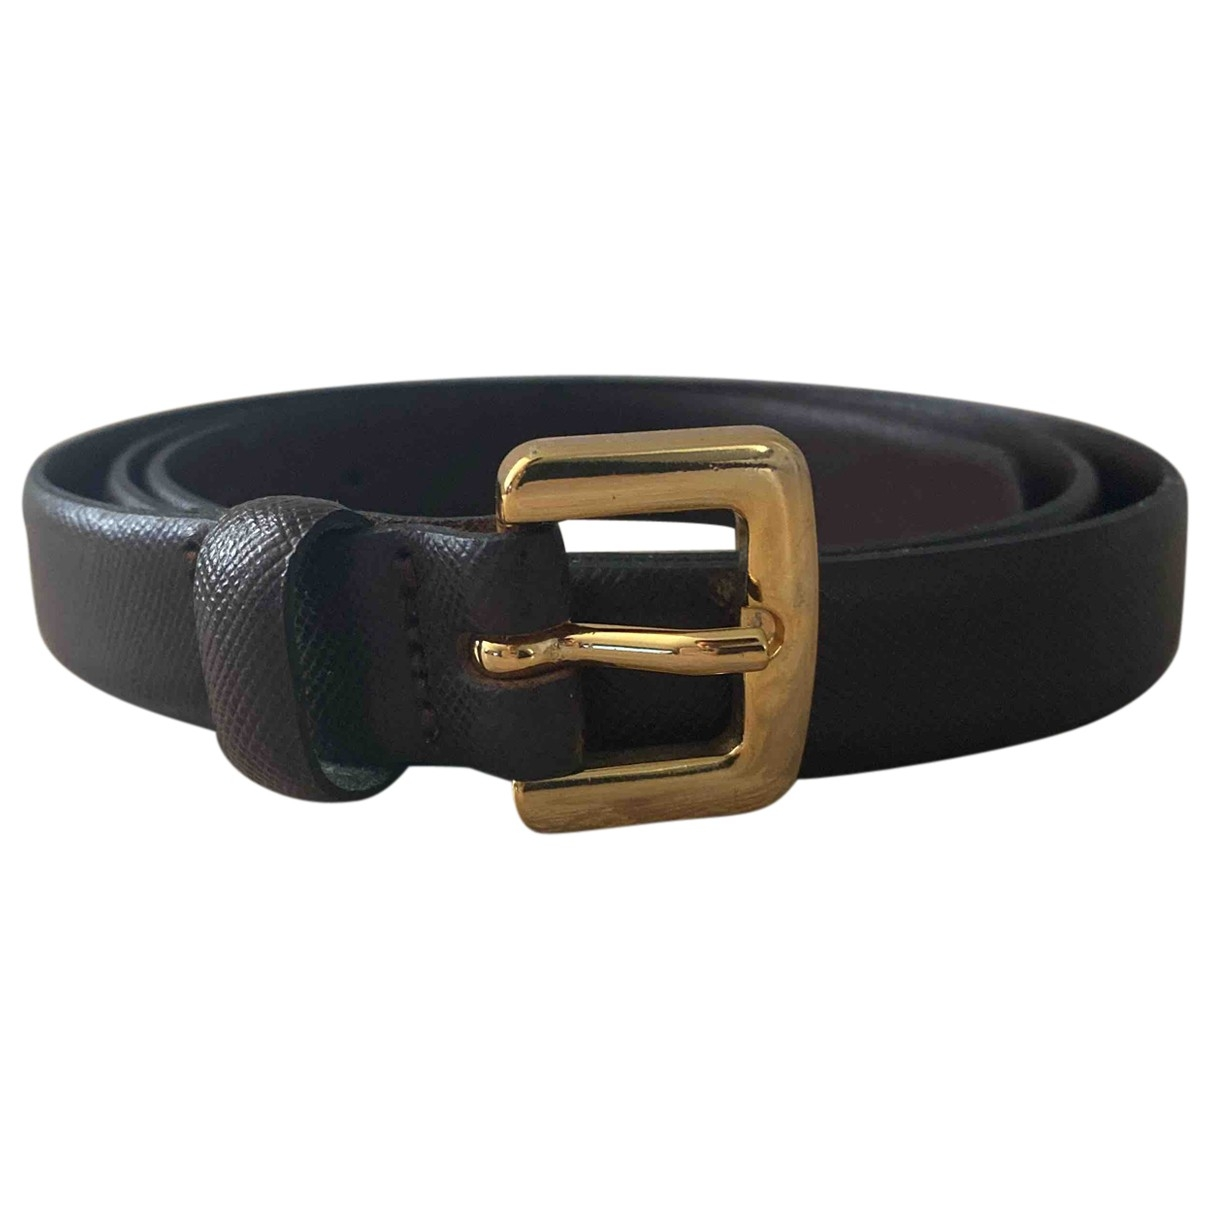 Massimo Dutti \N Brown Leather belt for Women 70 cm